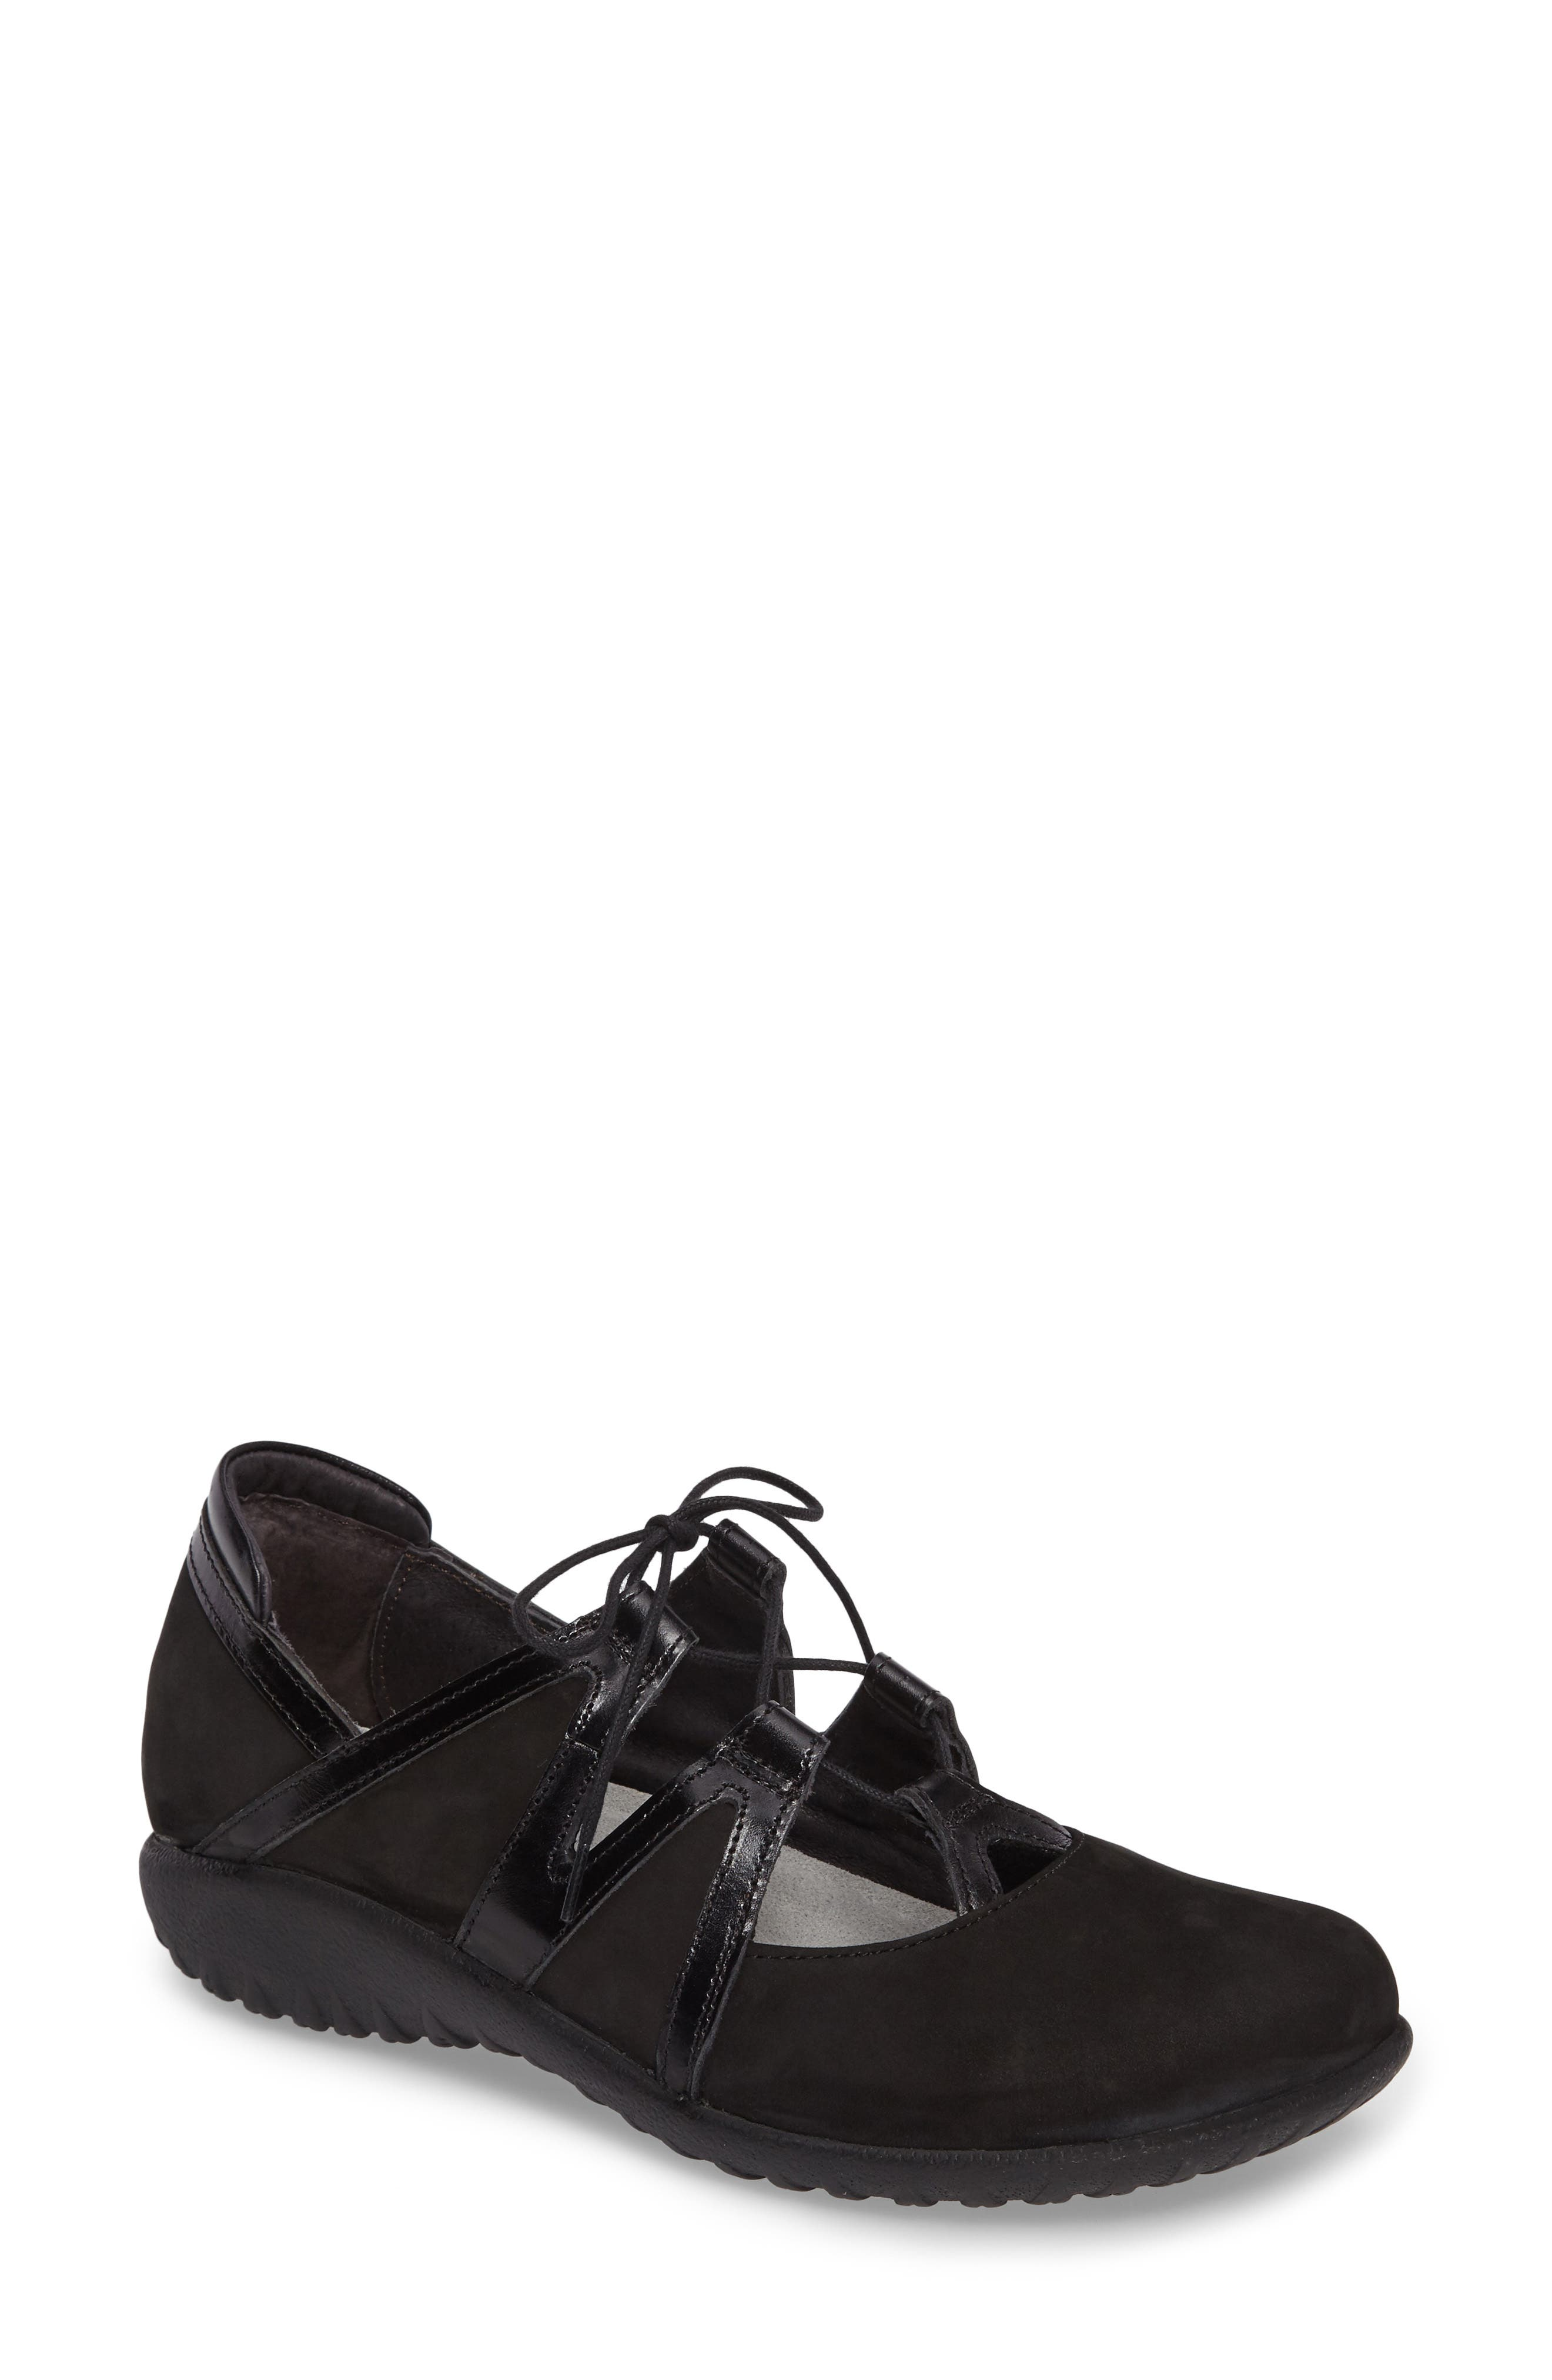 Timu Ghillie Lace Flat,                             Main thumbnail 1, color,                             BLACK MADRAS LEATHER